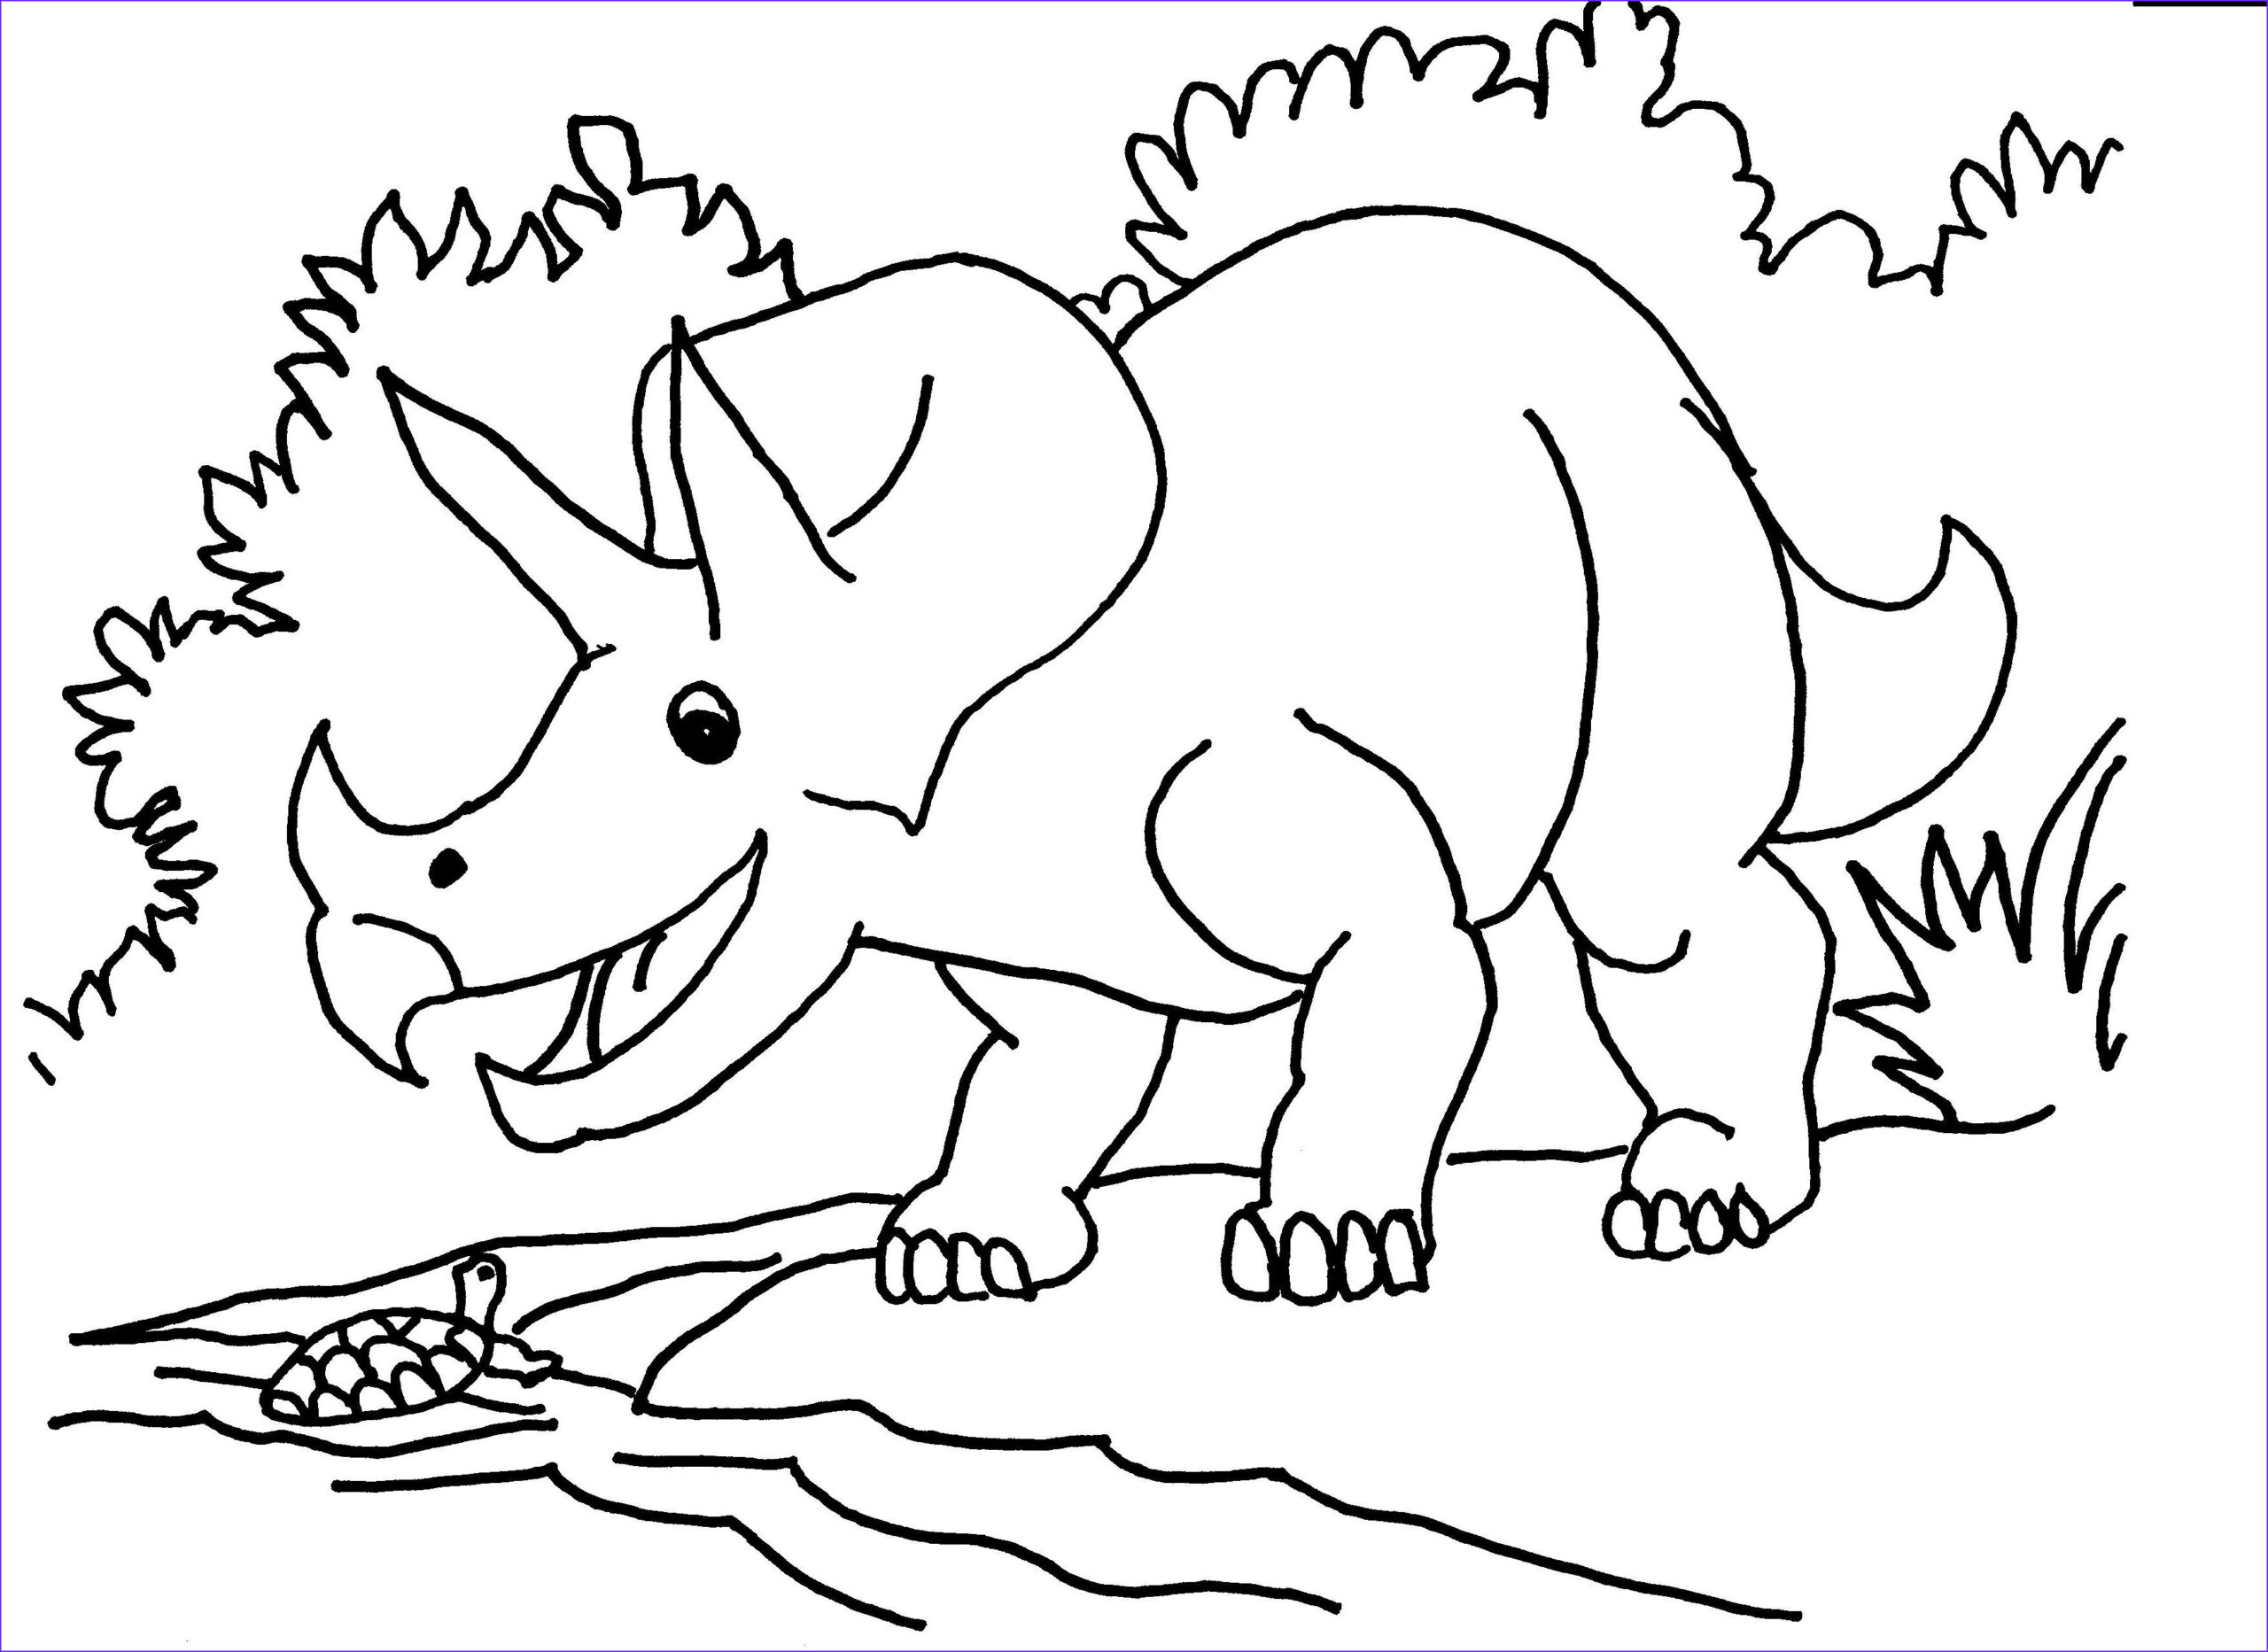 Dinosaur Coloring Pages For Toddlers Beautiful Photography Free Printable Triceratops Coloring Pages For Kids